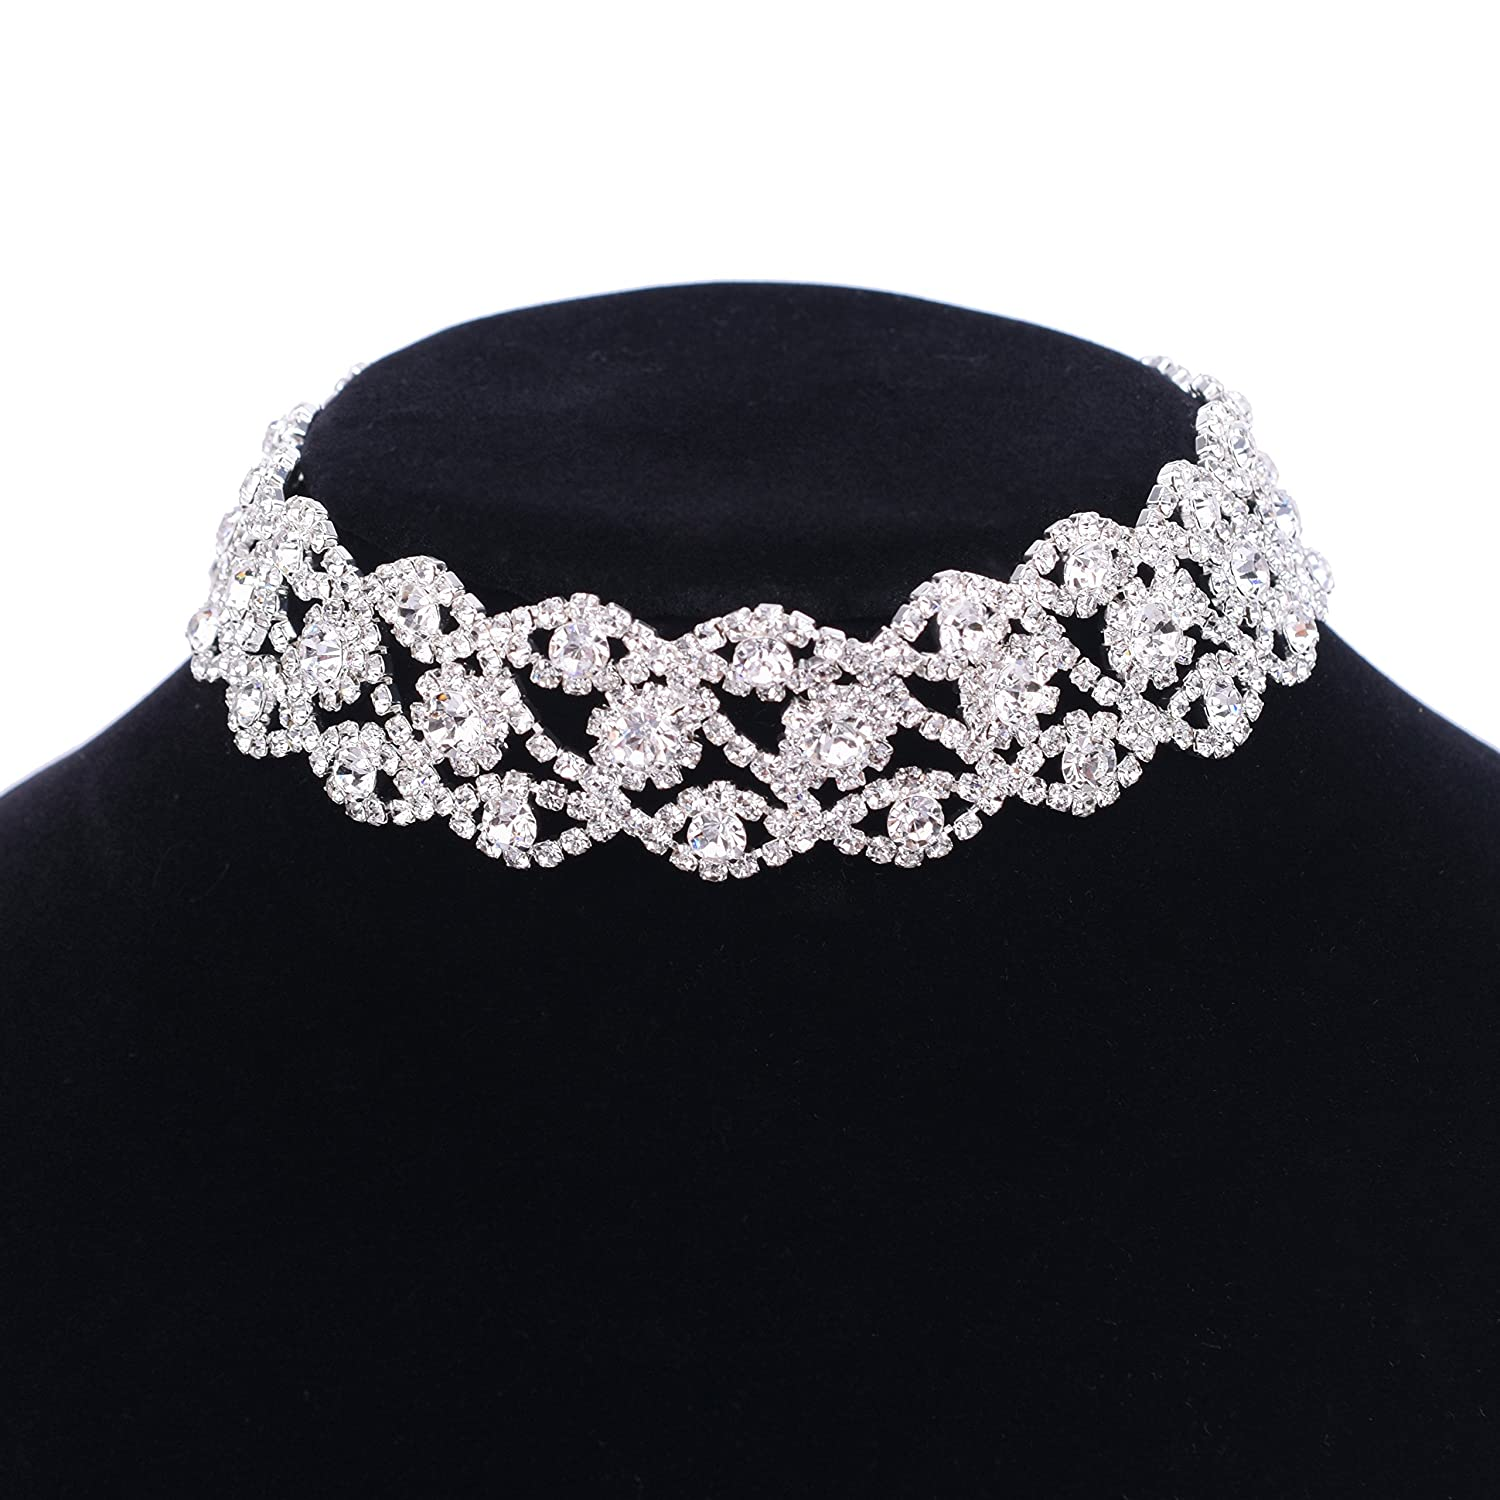 Paxuan Luxury Womens Clear Rhinestone Crystal Silver Choker Necklace Wide Collar Necklace Adjustable (Silver Plated White Crystal) Paxuan E-commerce